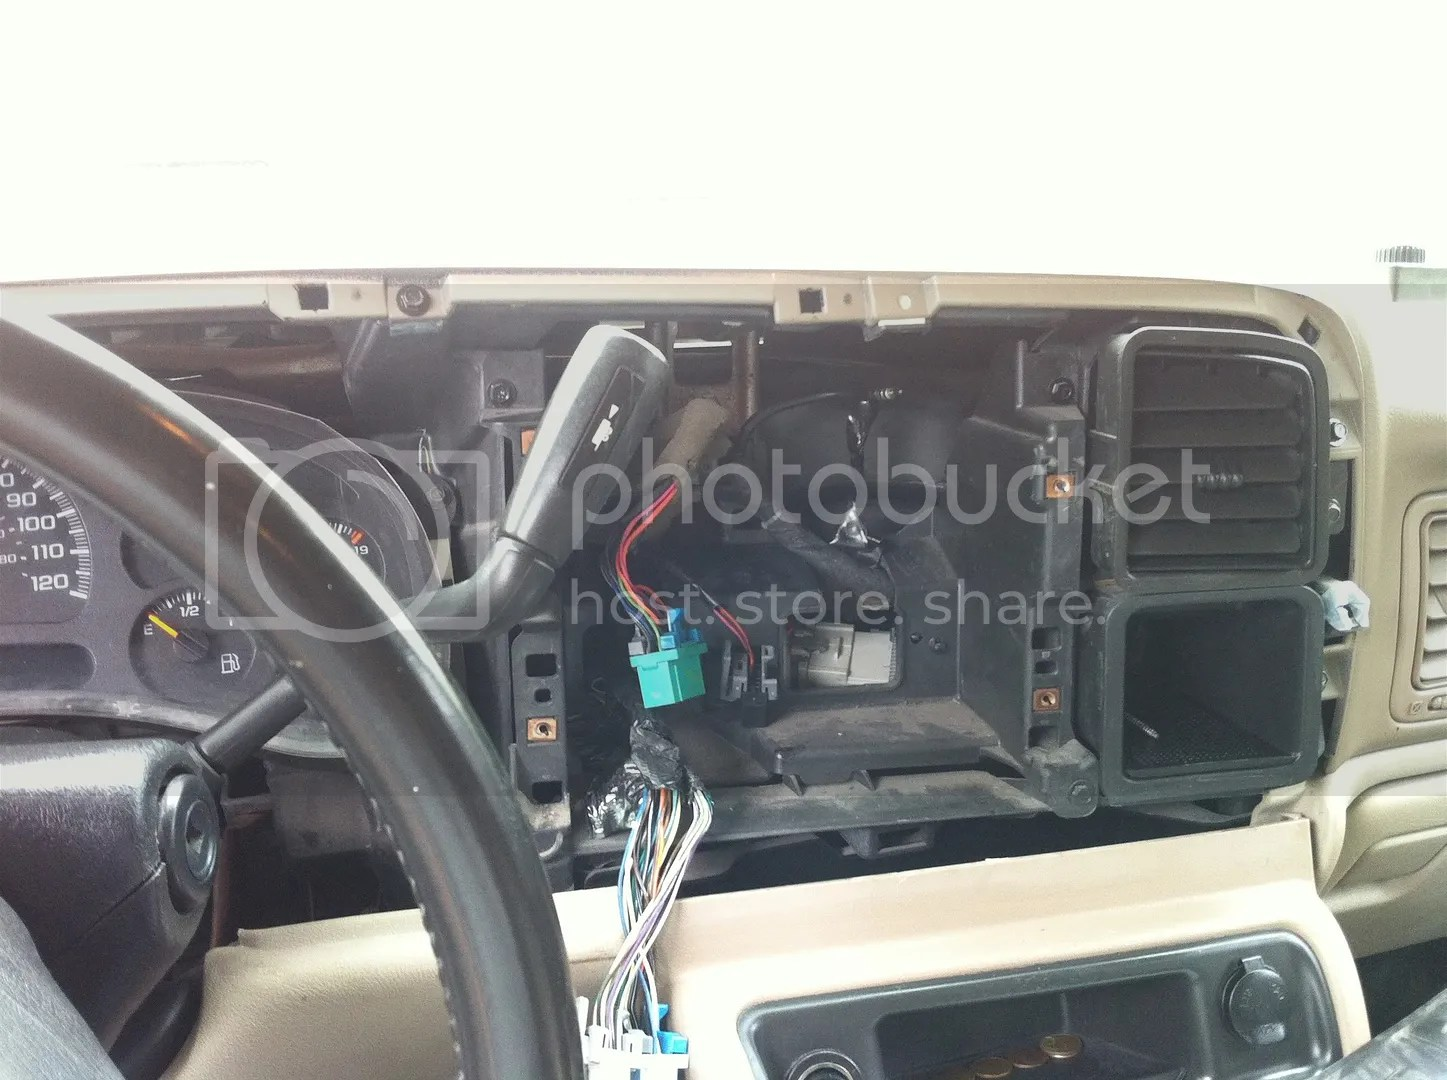 Bose Radio Wiring Diagram Together With Bmw Radio Wiring Harness Color